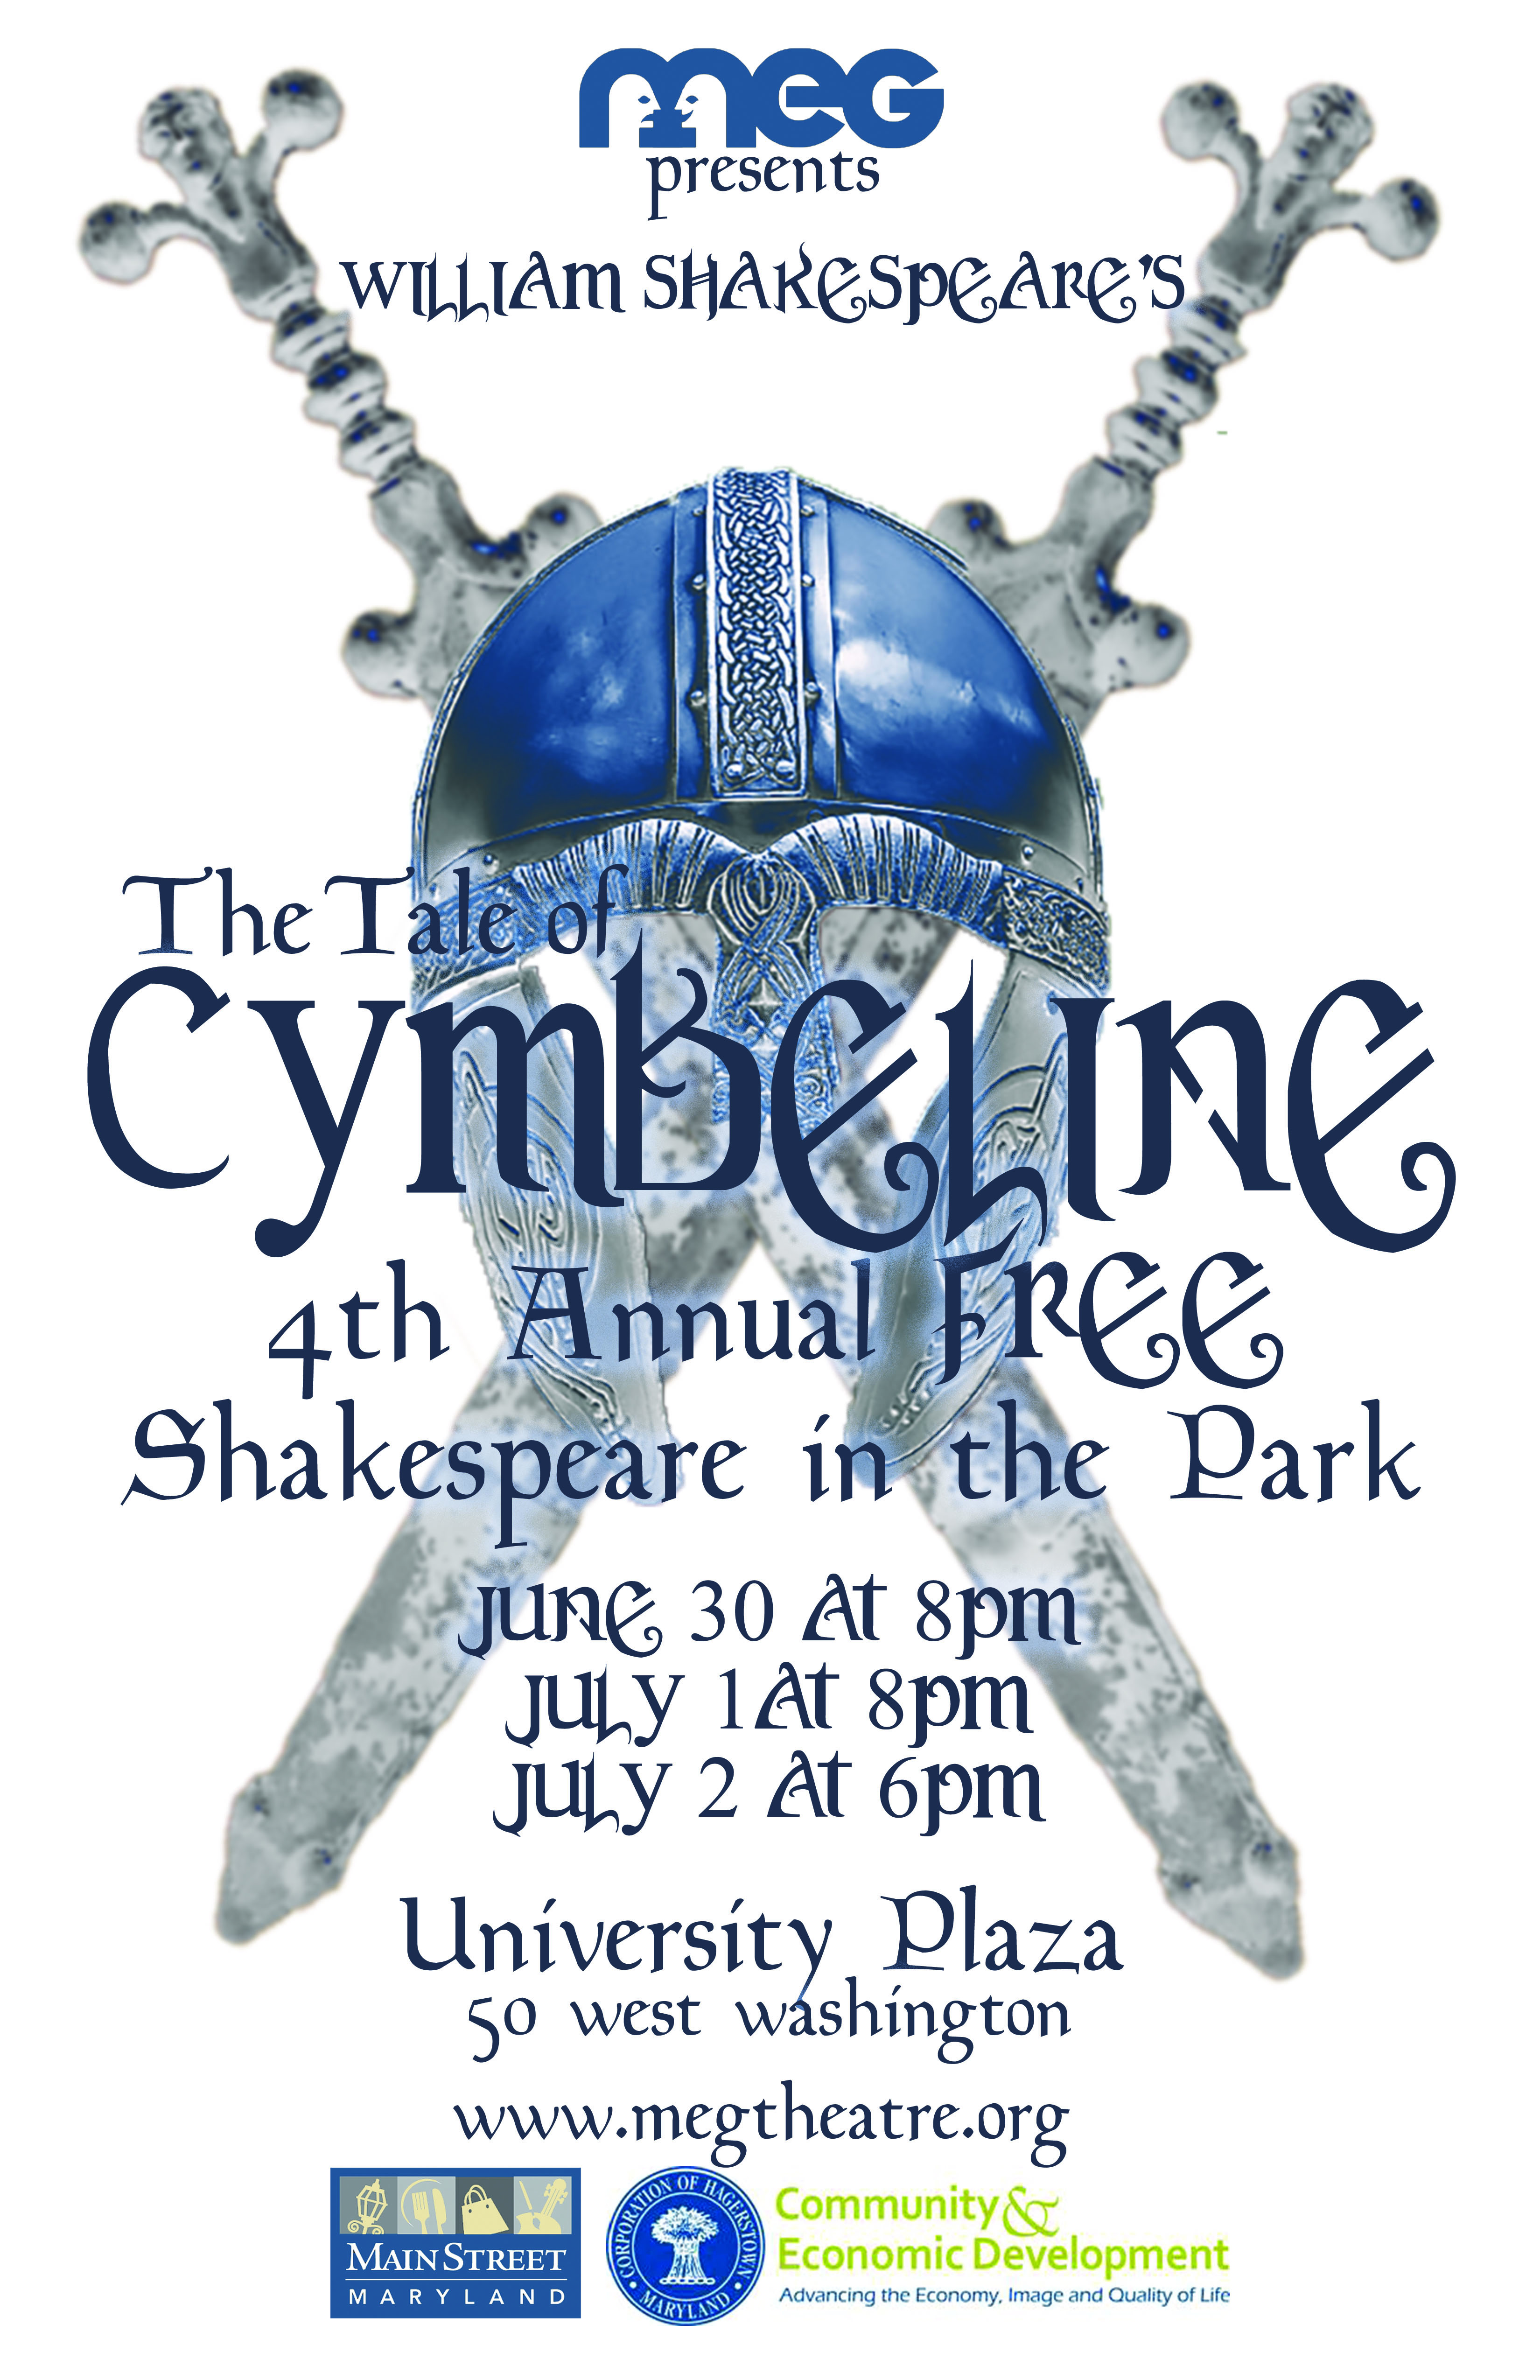 4th Annual Shakespeare in the Park